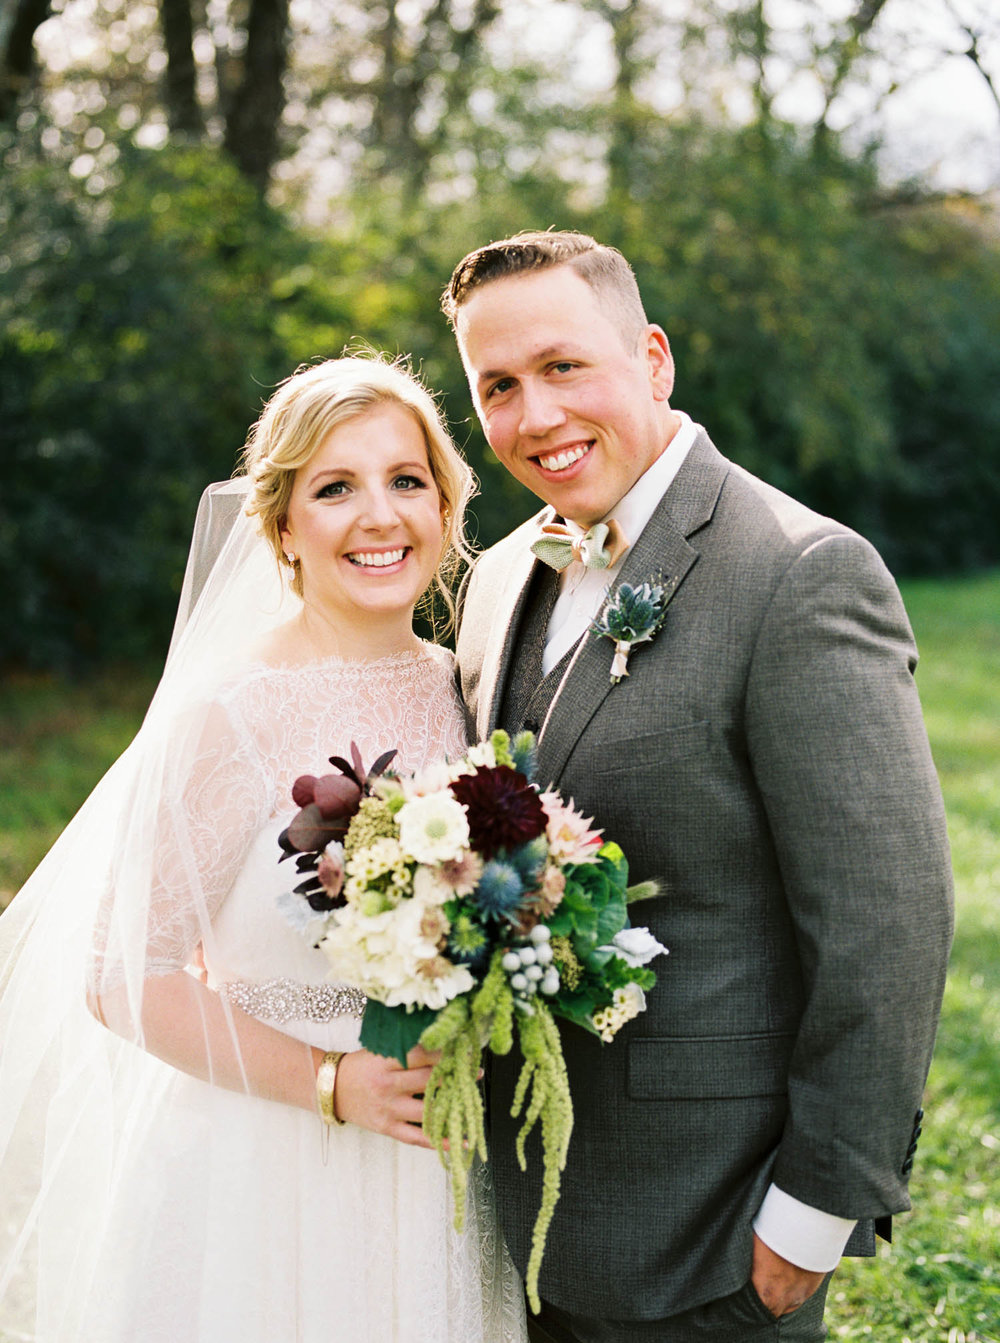 """Alyssa really has an eye for beauty and is able to capture your wedding day vision so flawlessly. You can tell she loves what she does and cares about her clients. It was an honor to work with Alyssa and we are very happy with the pictures that we will treasure for years to come!""  — Laura & Tyler"